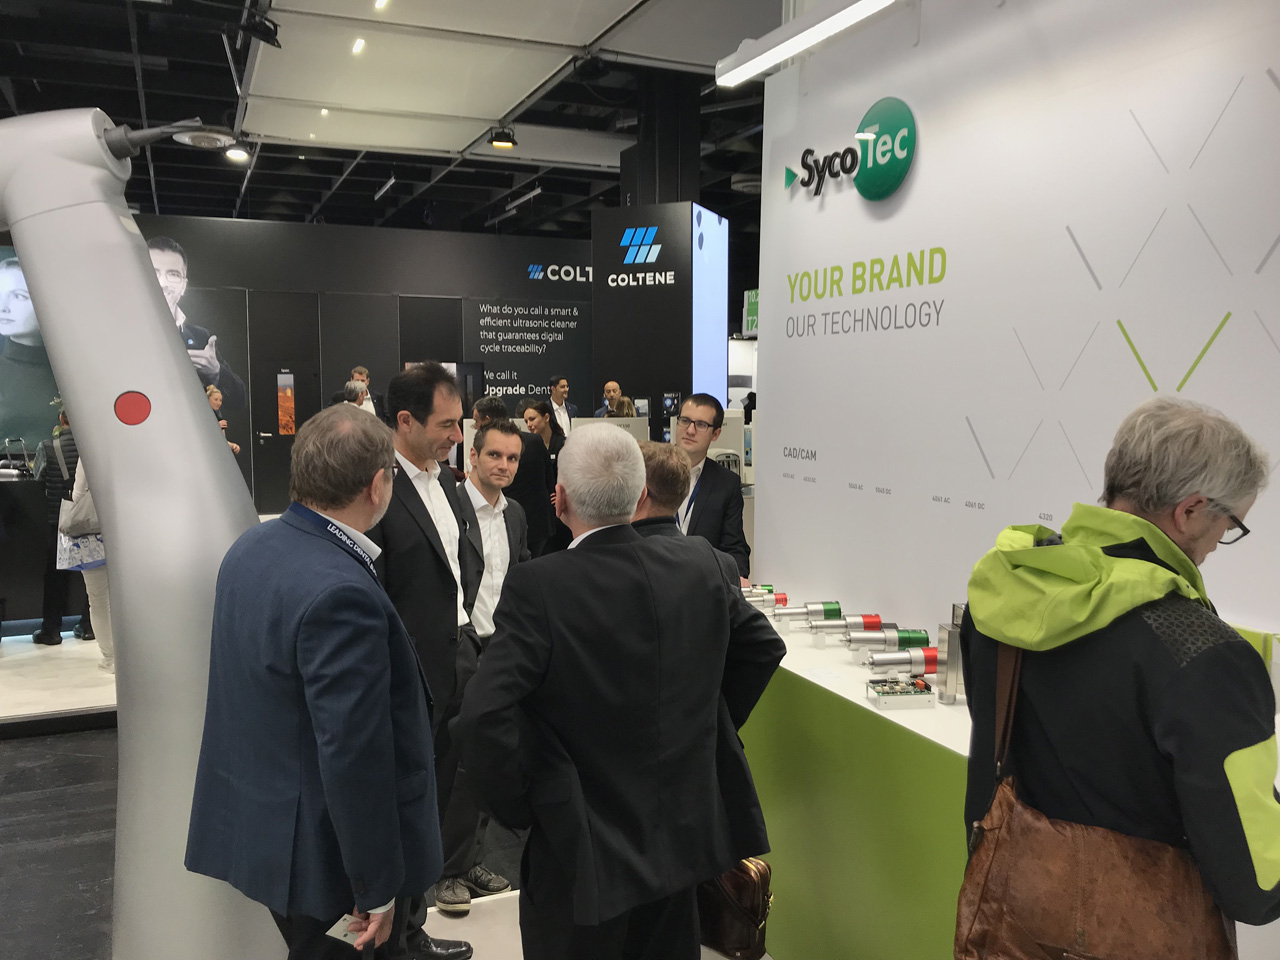 With SycoTec at the IDS 2019 in Cologne